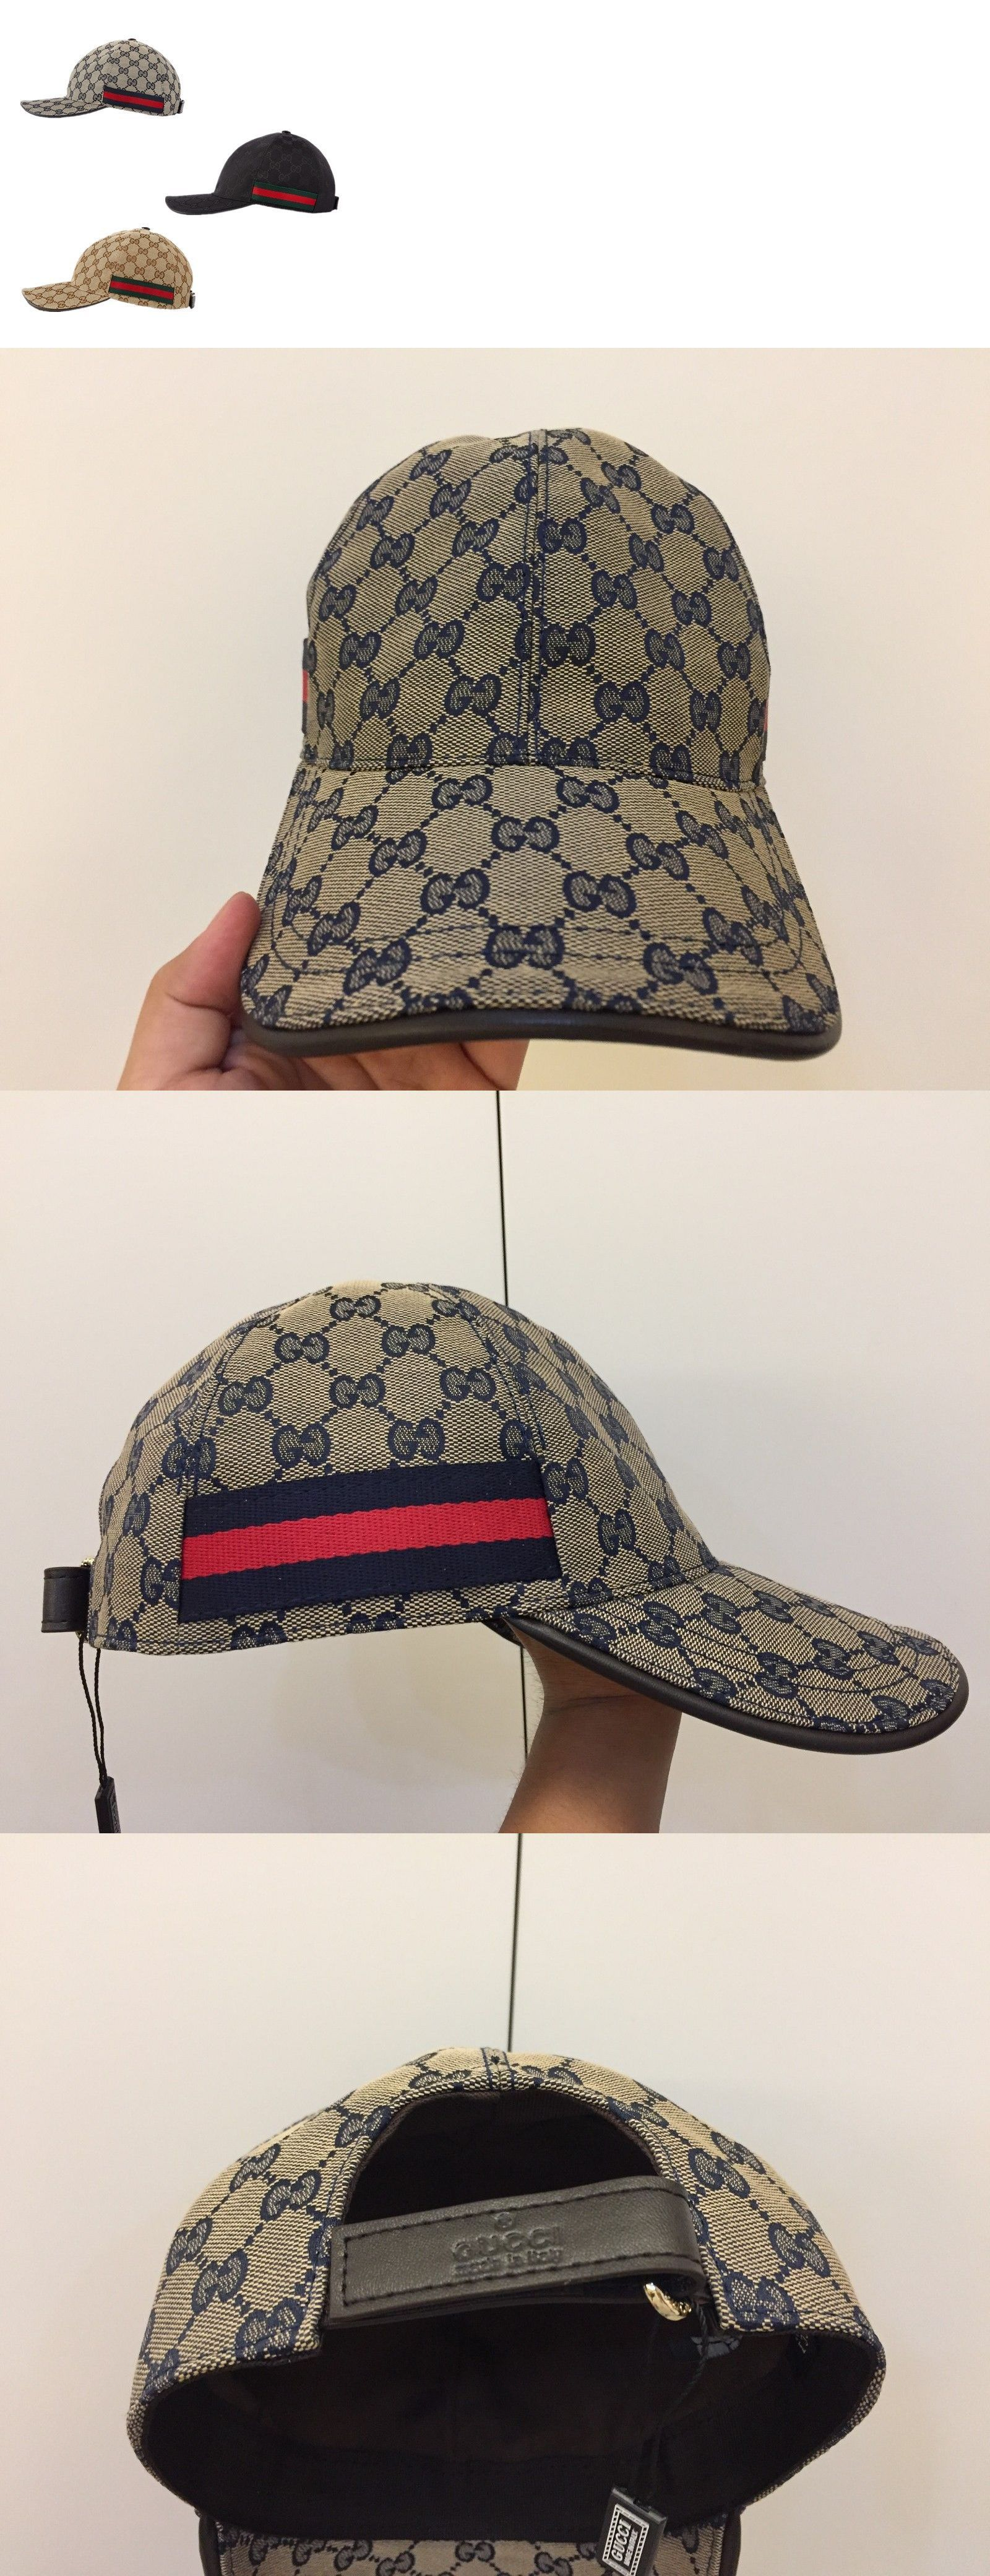 993a25a4a19704 Hats 163543  Nwt  Men Gucci Cap Baseball Monogram Gg Cap Size M Adjustable  Black Brown Gray -  BUY IT NOW ONLY   86.65 on eBay!